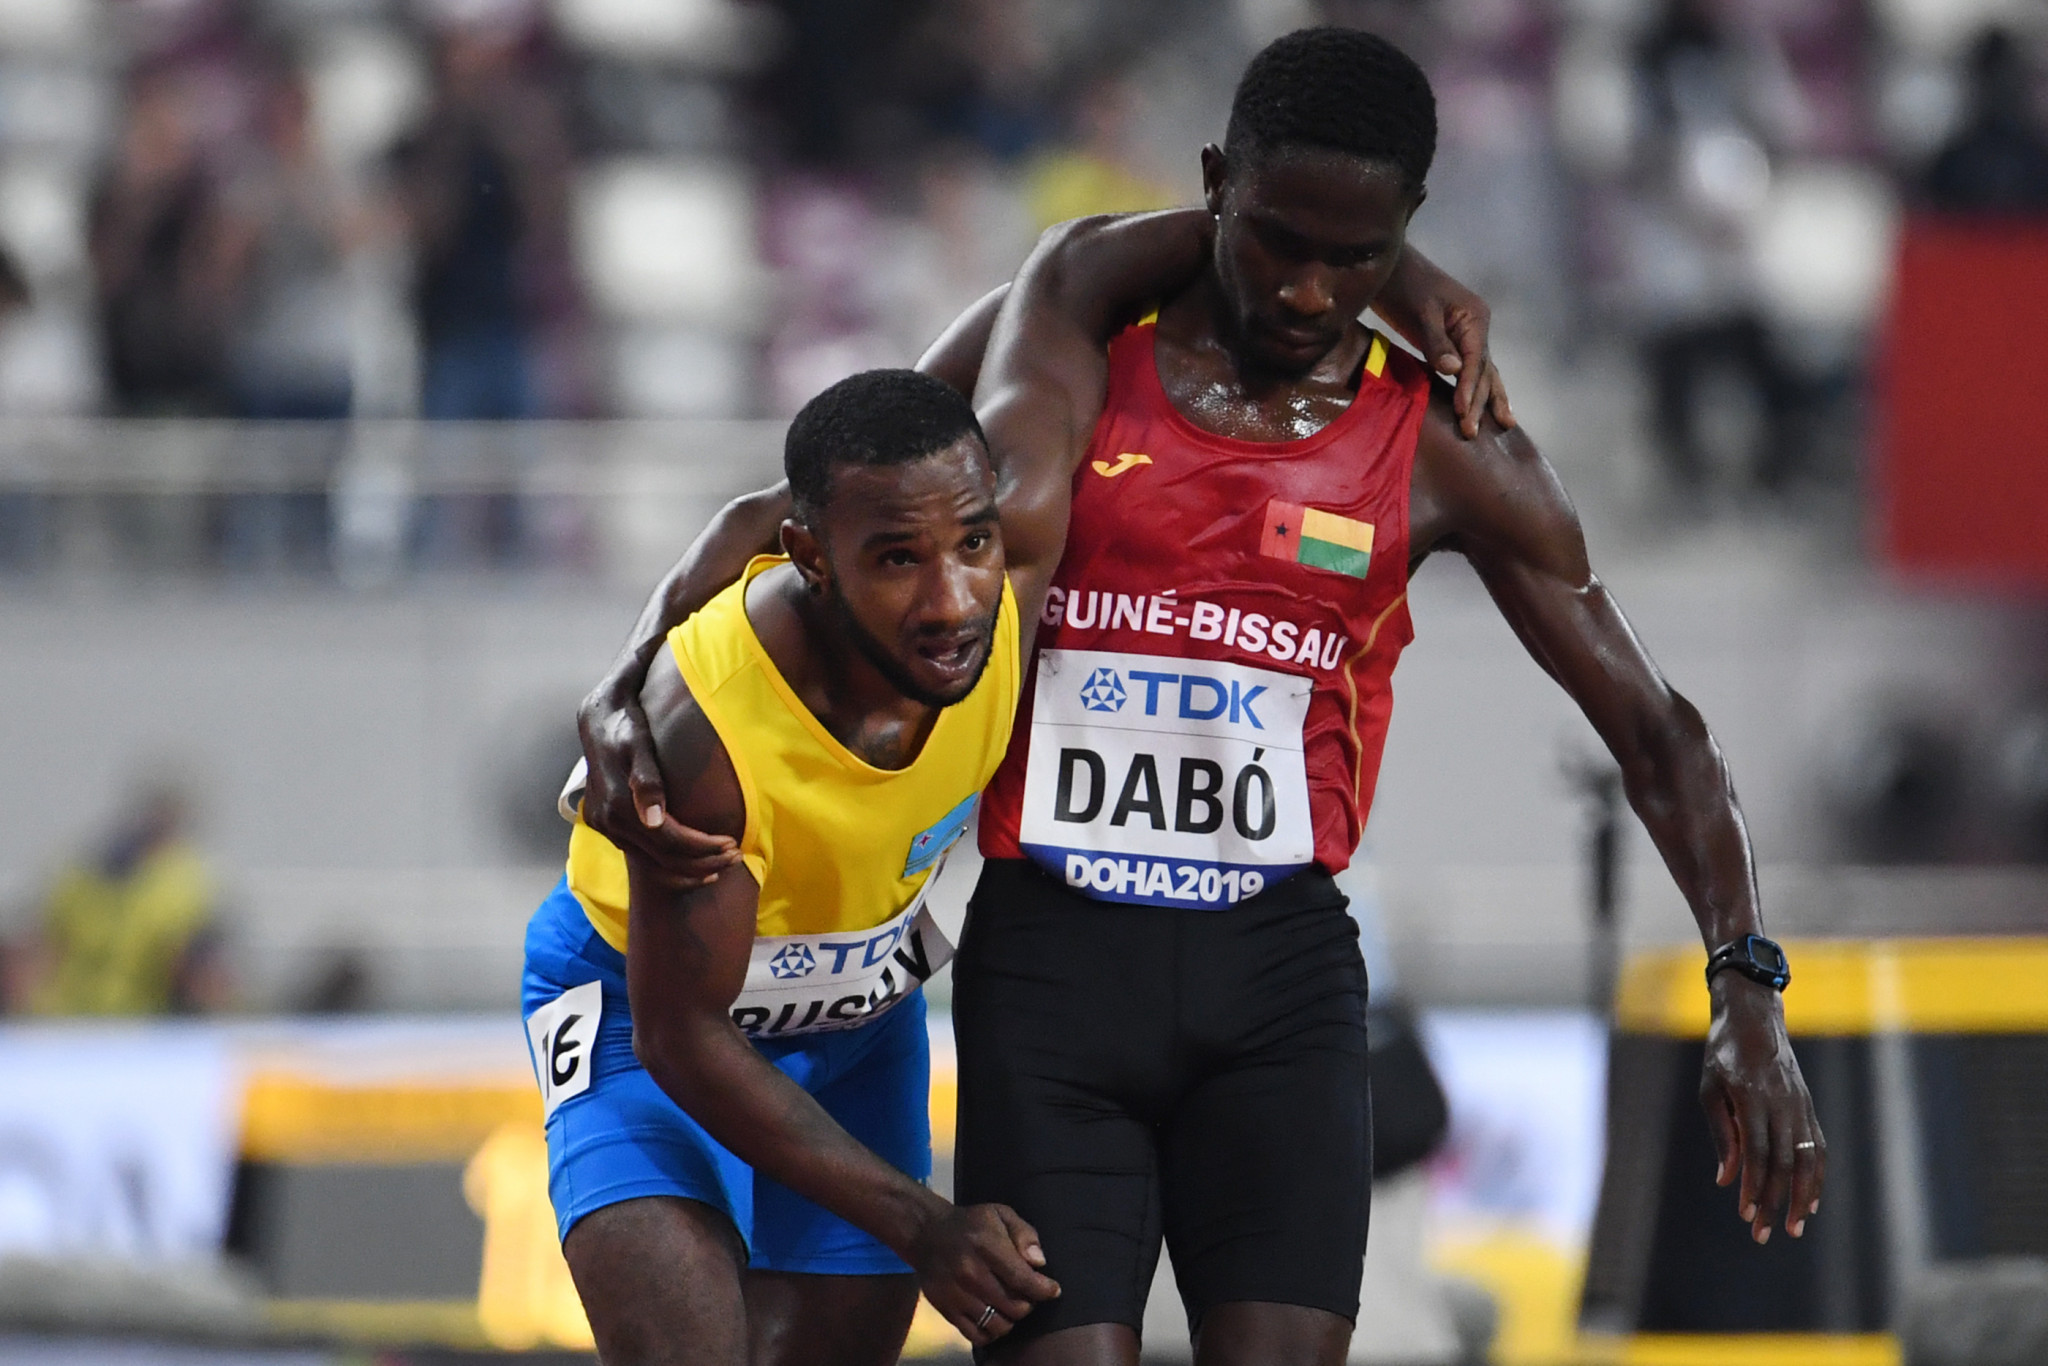 Guinea-Bissau's Braima Suncar Dabo helped stricken rival, Jonathan Busby of Aruba, cross the finishing line in the 5,000 metres on the opening day of the IAAF World Championships in Doha ©Getty Images